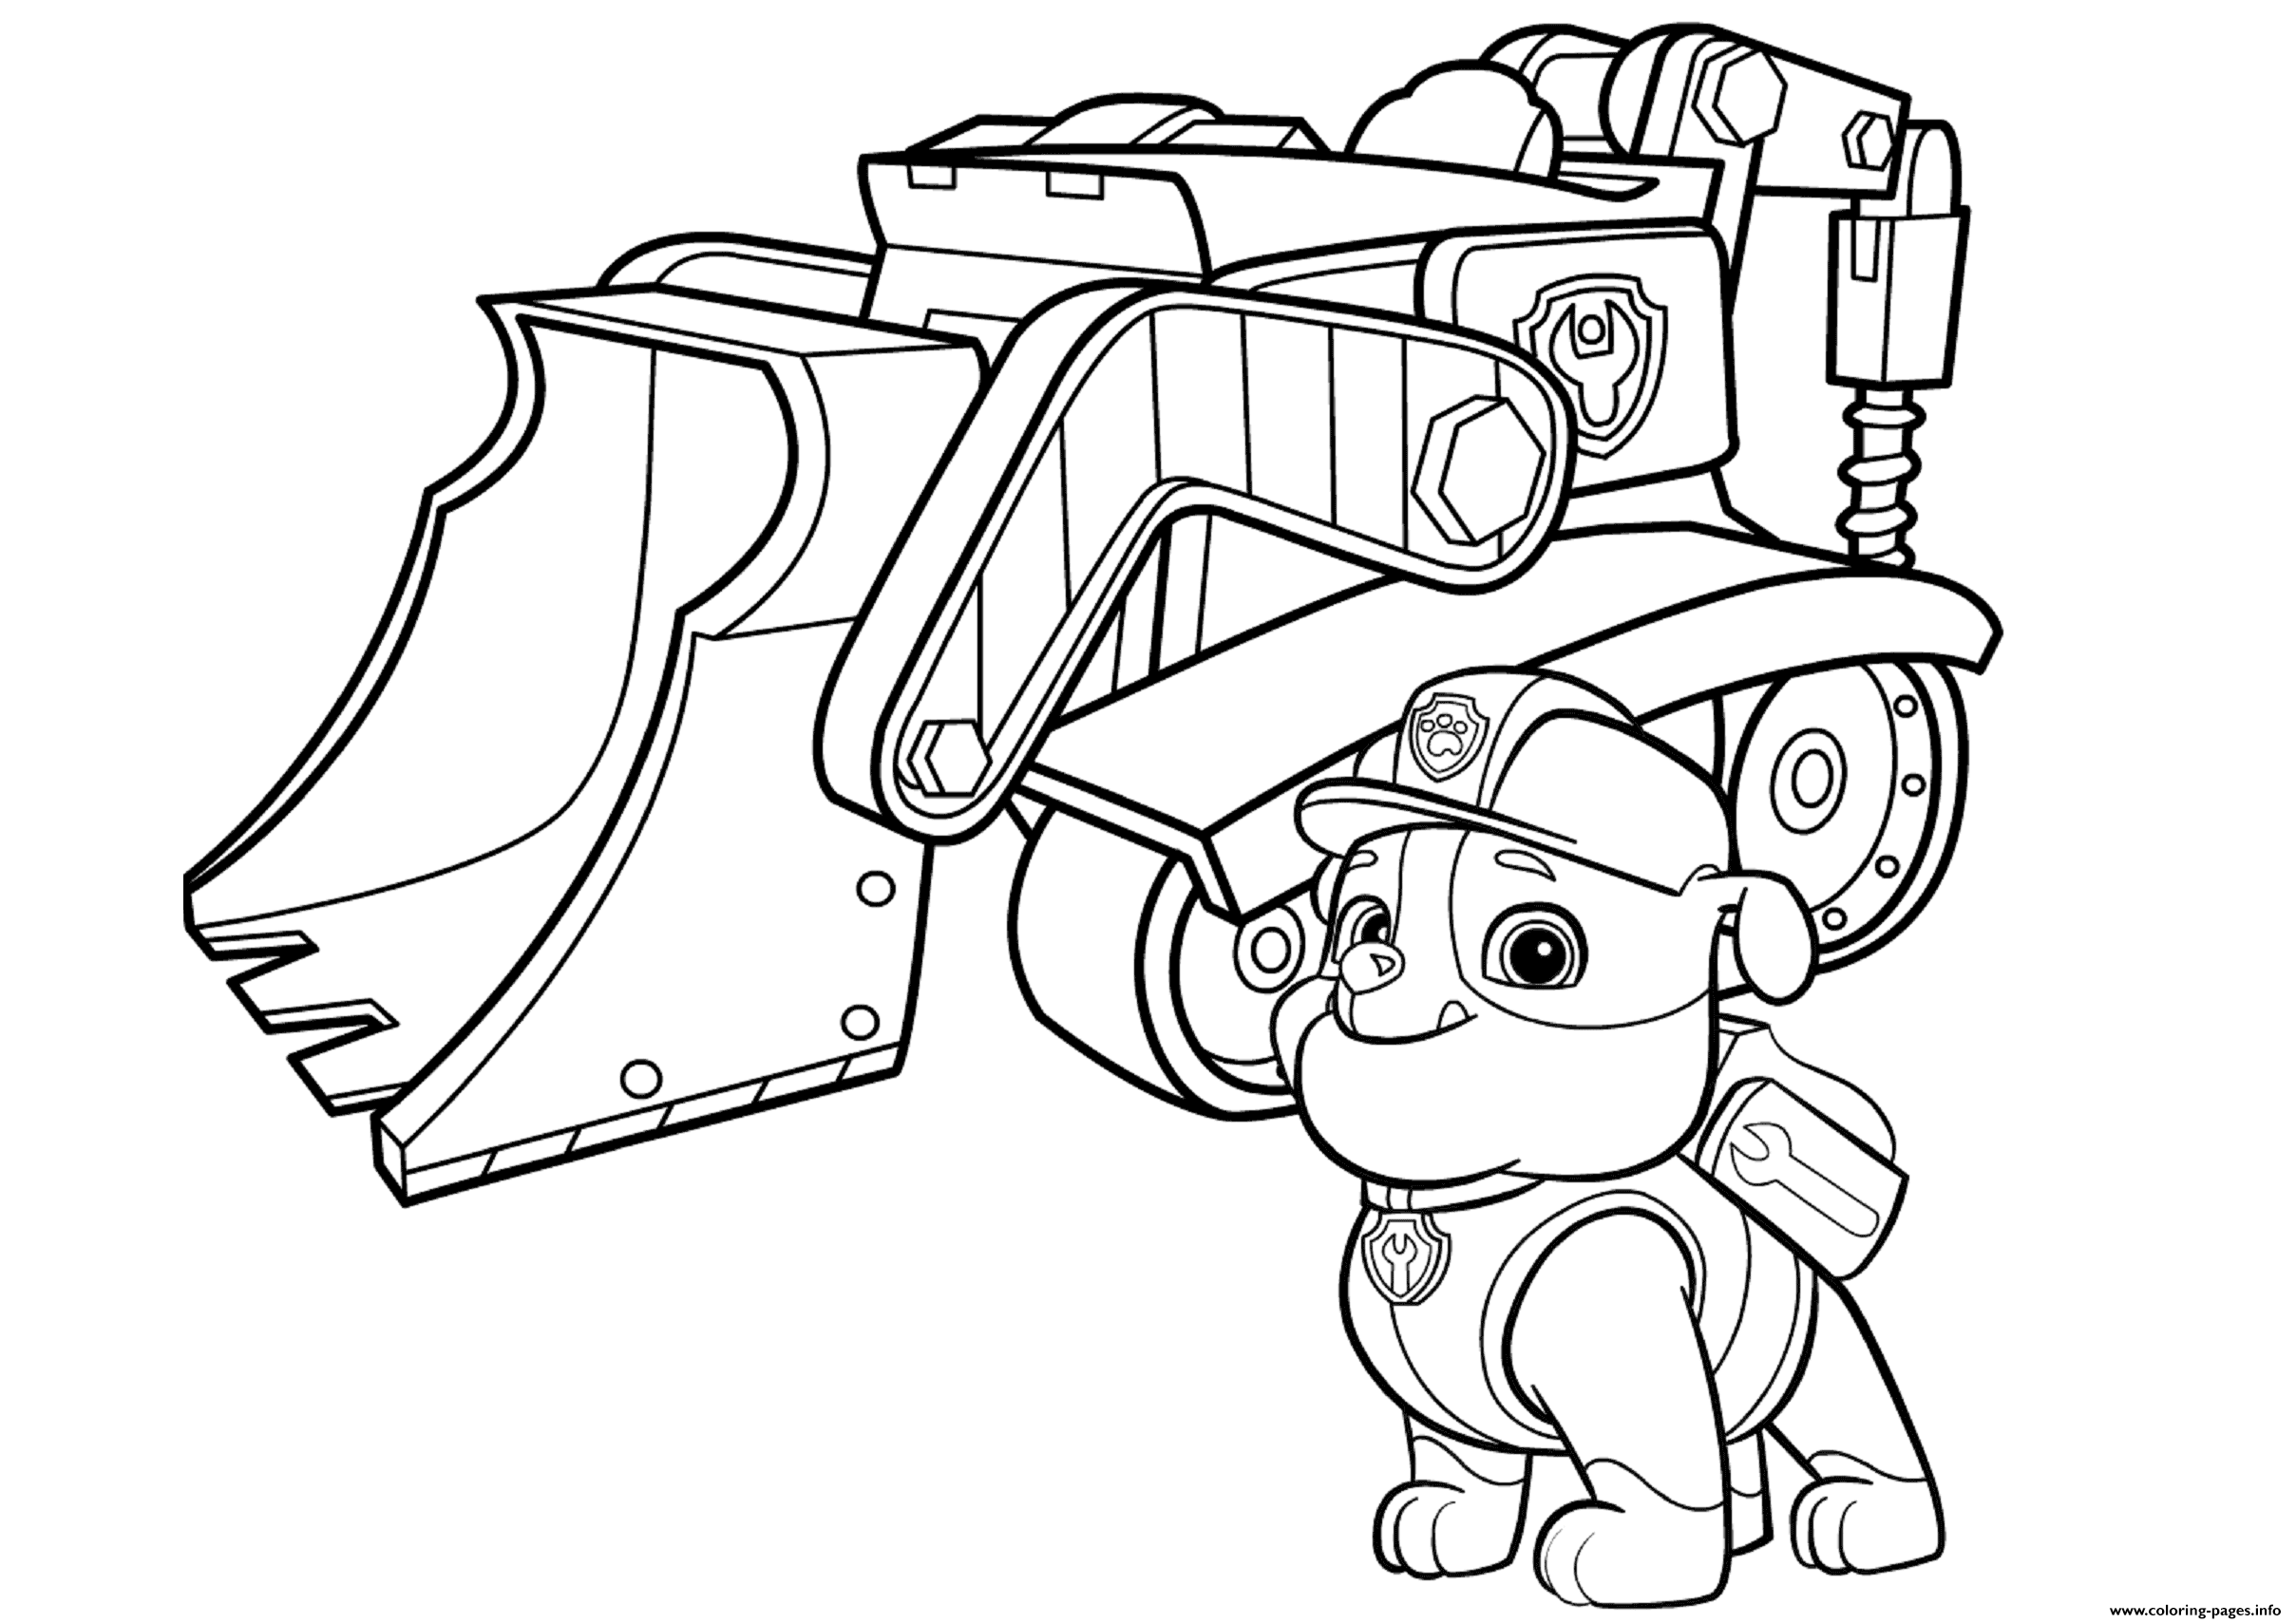 Paw Patrol Rubbles Bulldozer Paw Patrol coloring pages